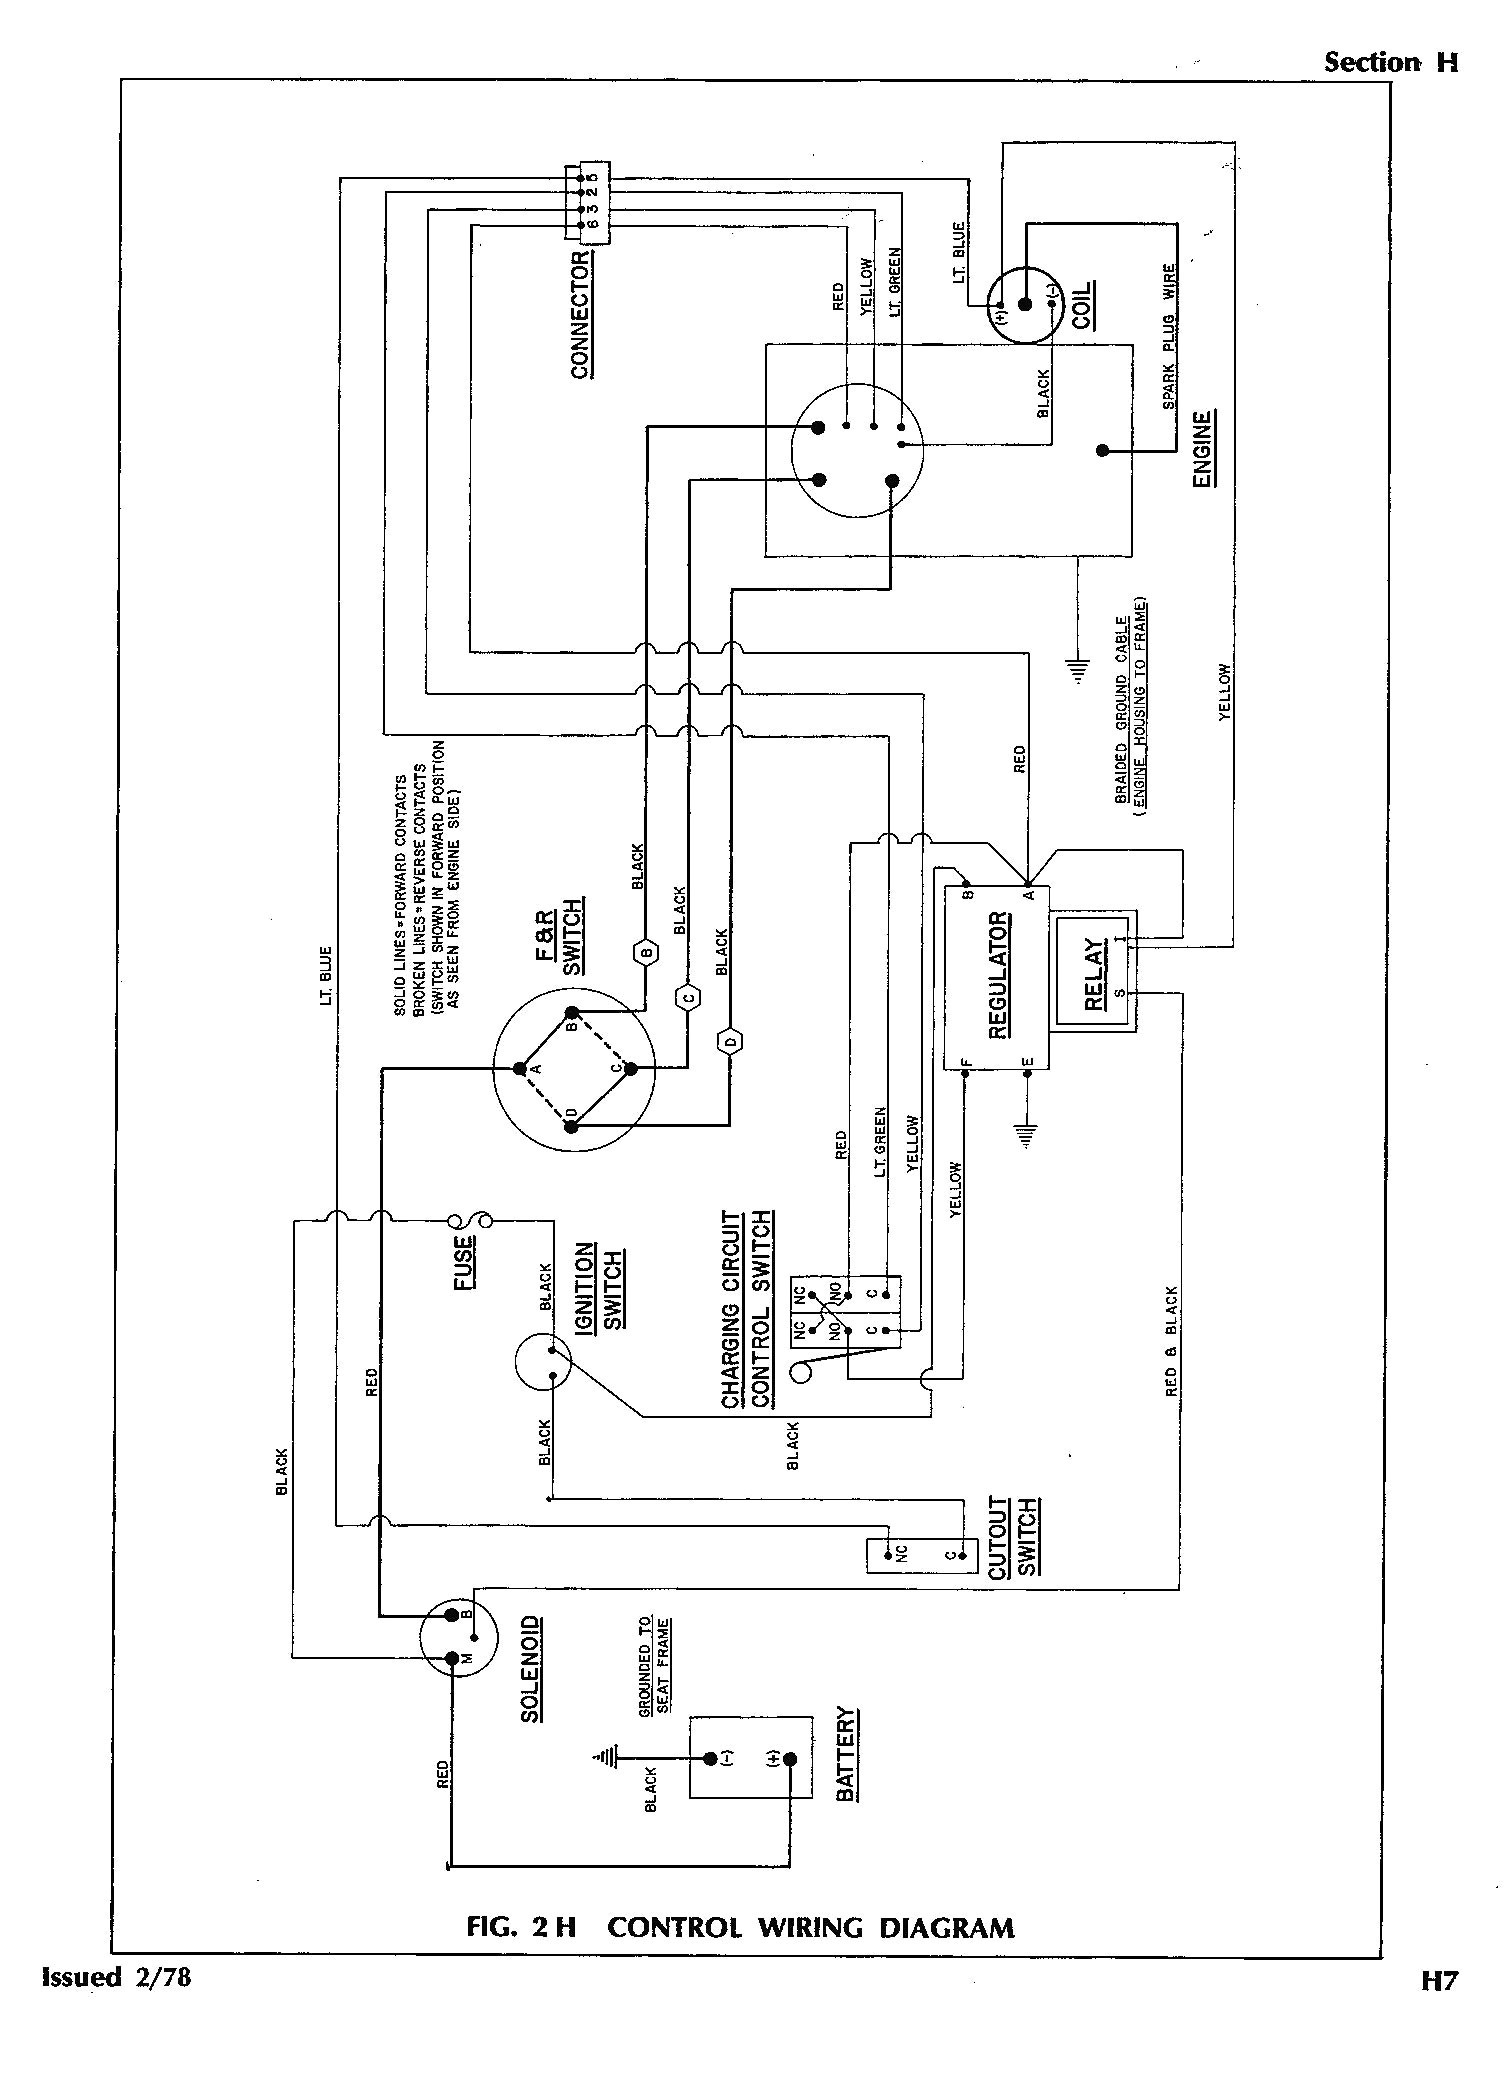 36 Volt Ez Go Golf Cart Light Wiring Diagram